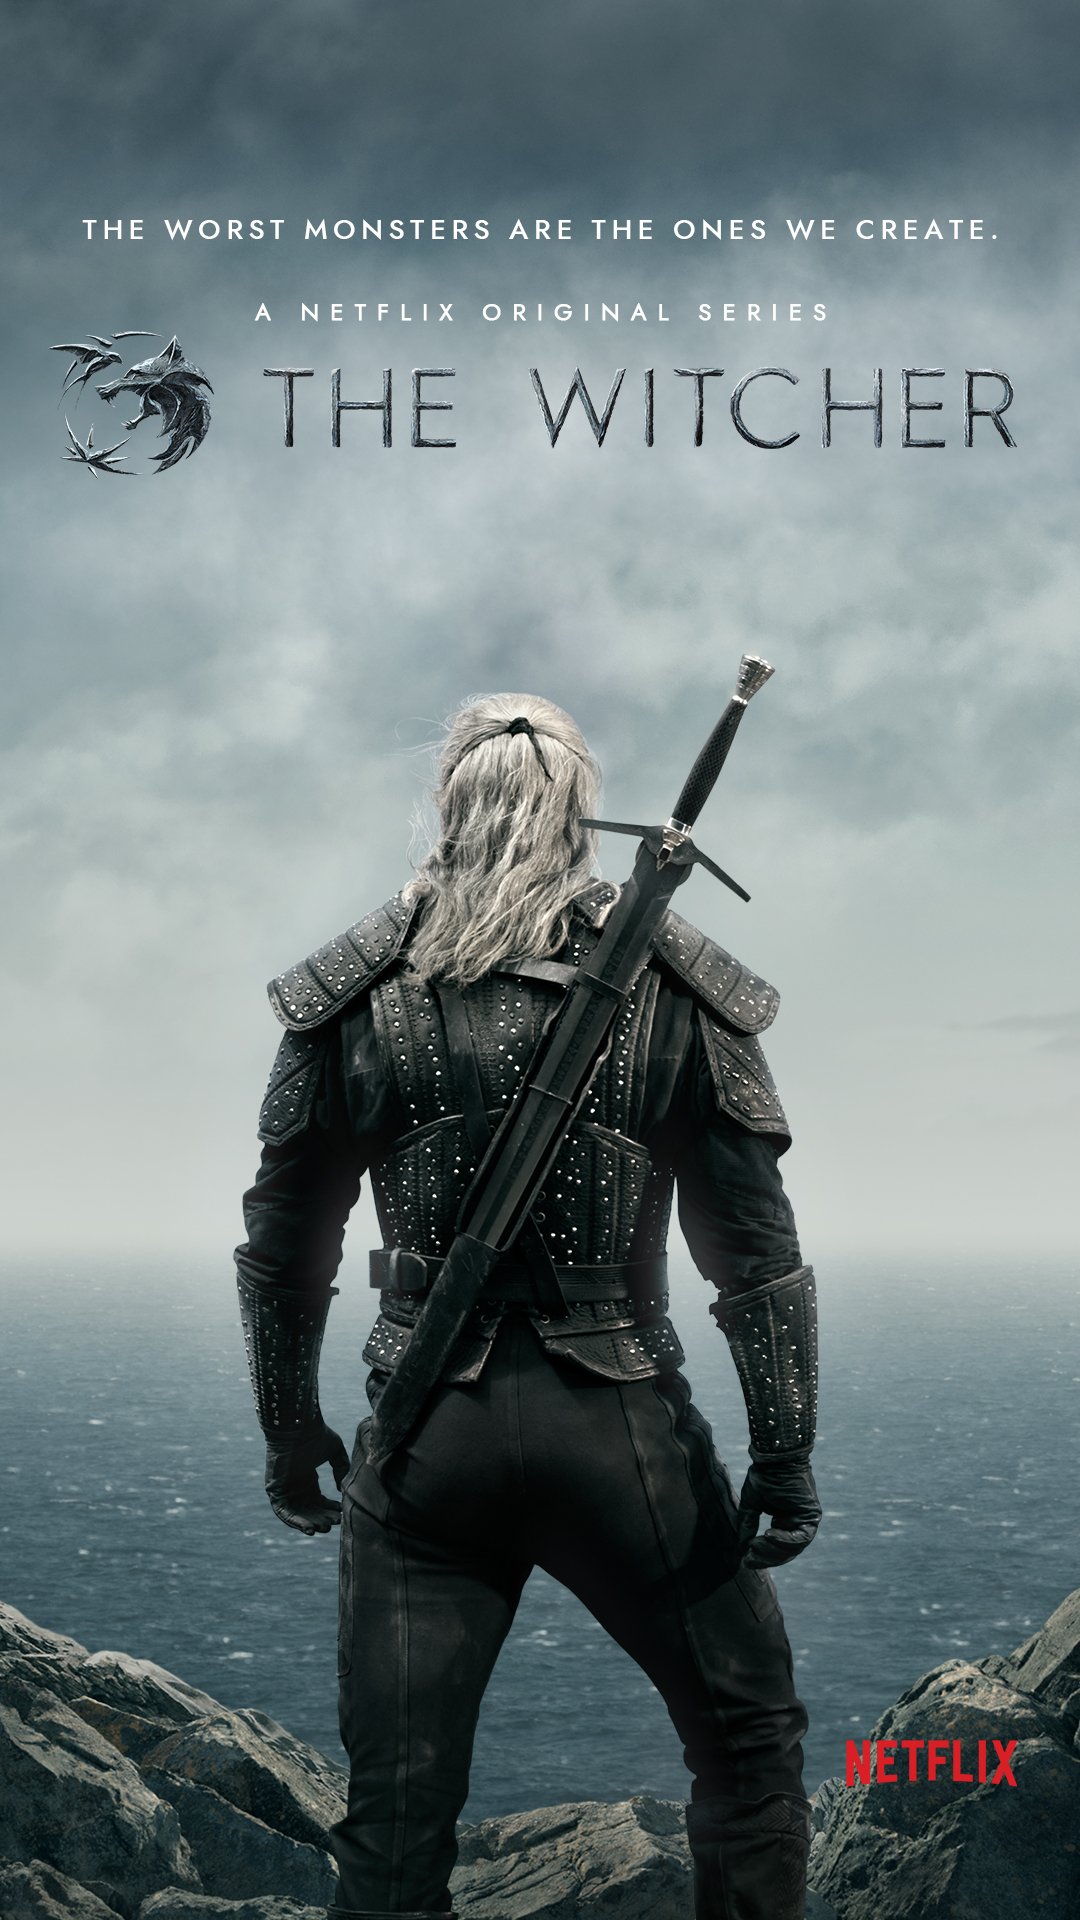 The Witcher Starring Henry Cavil